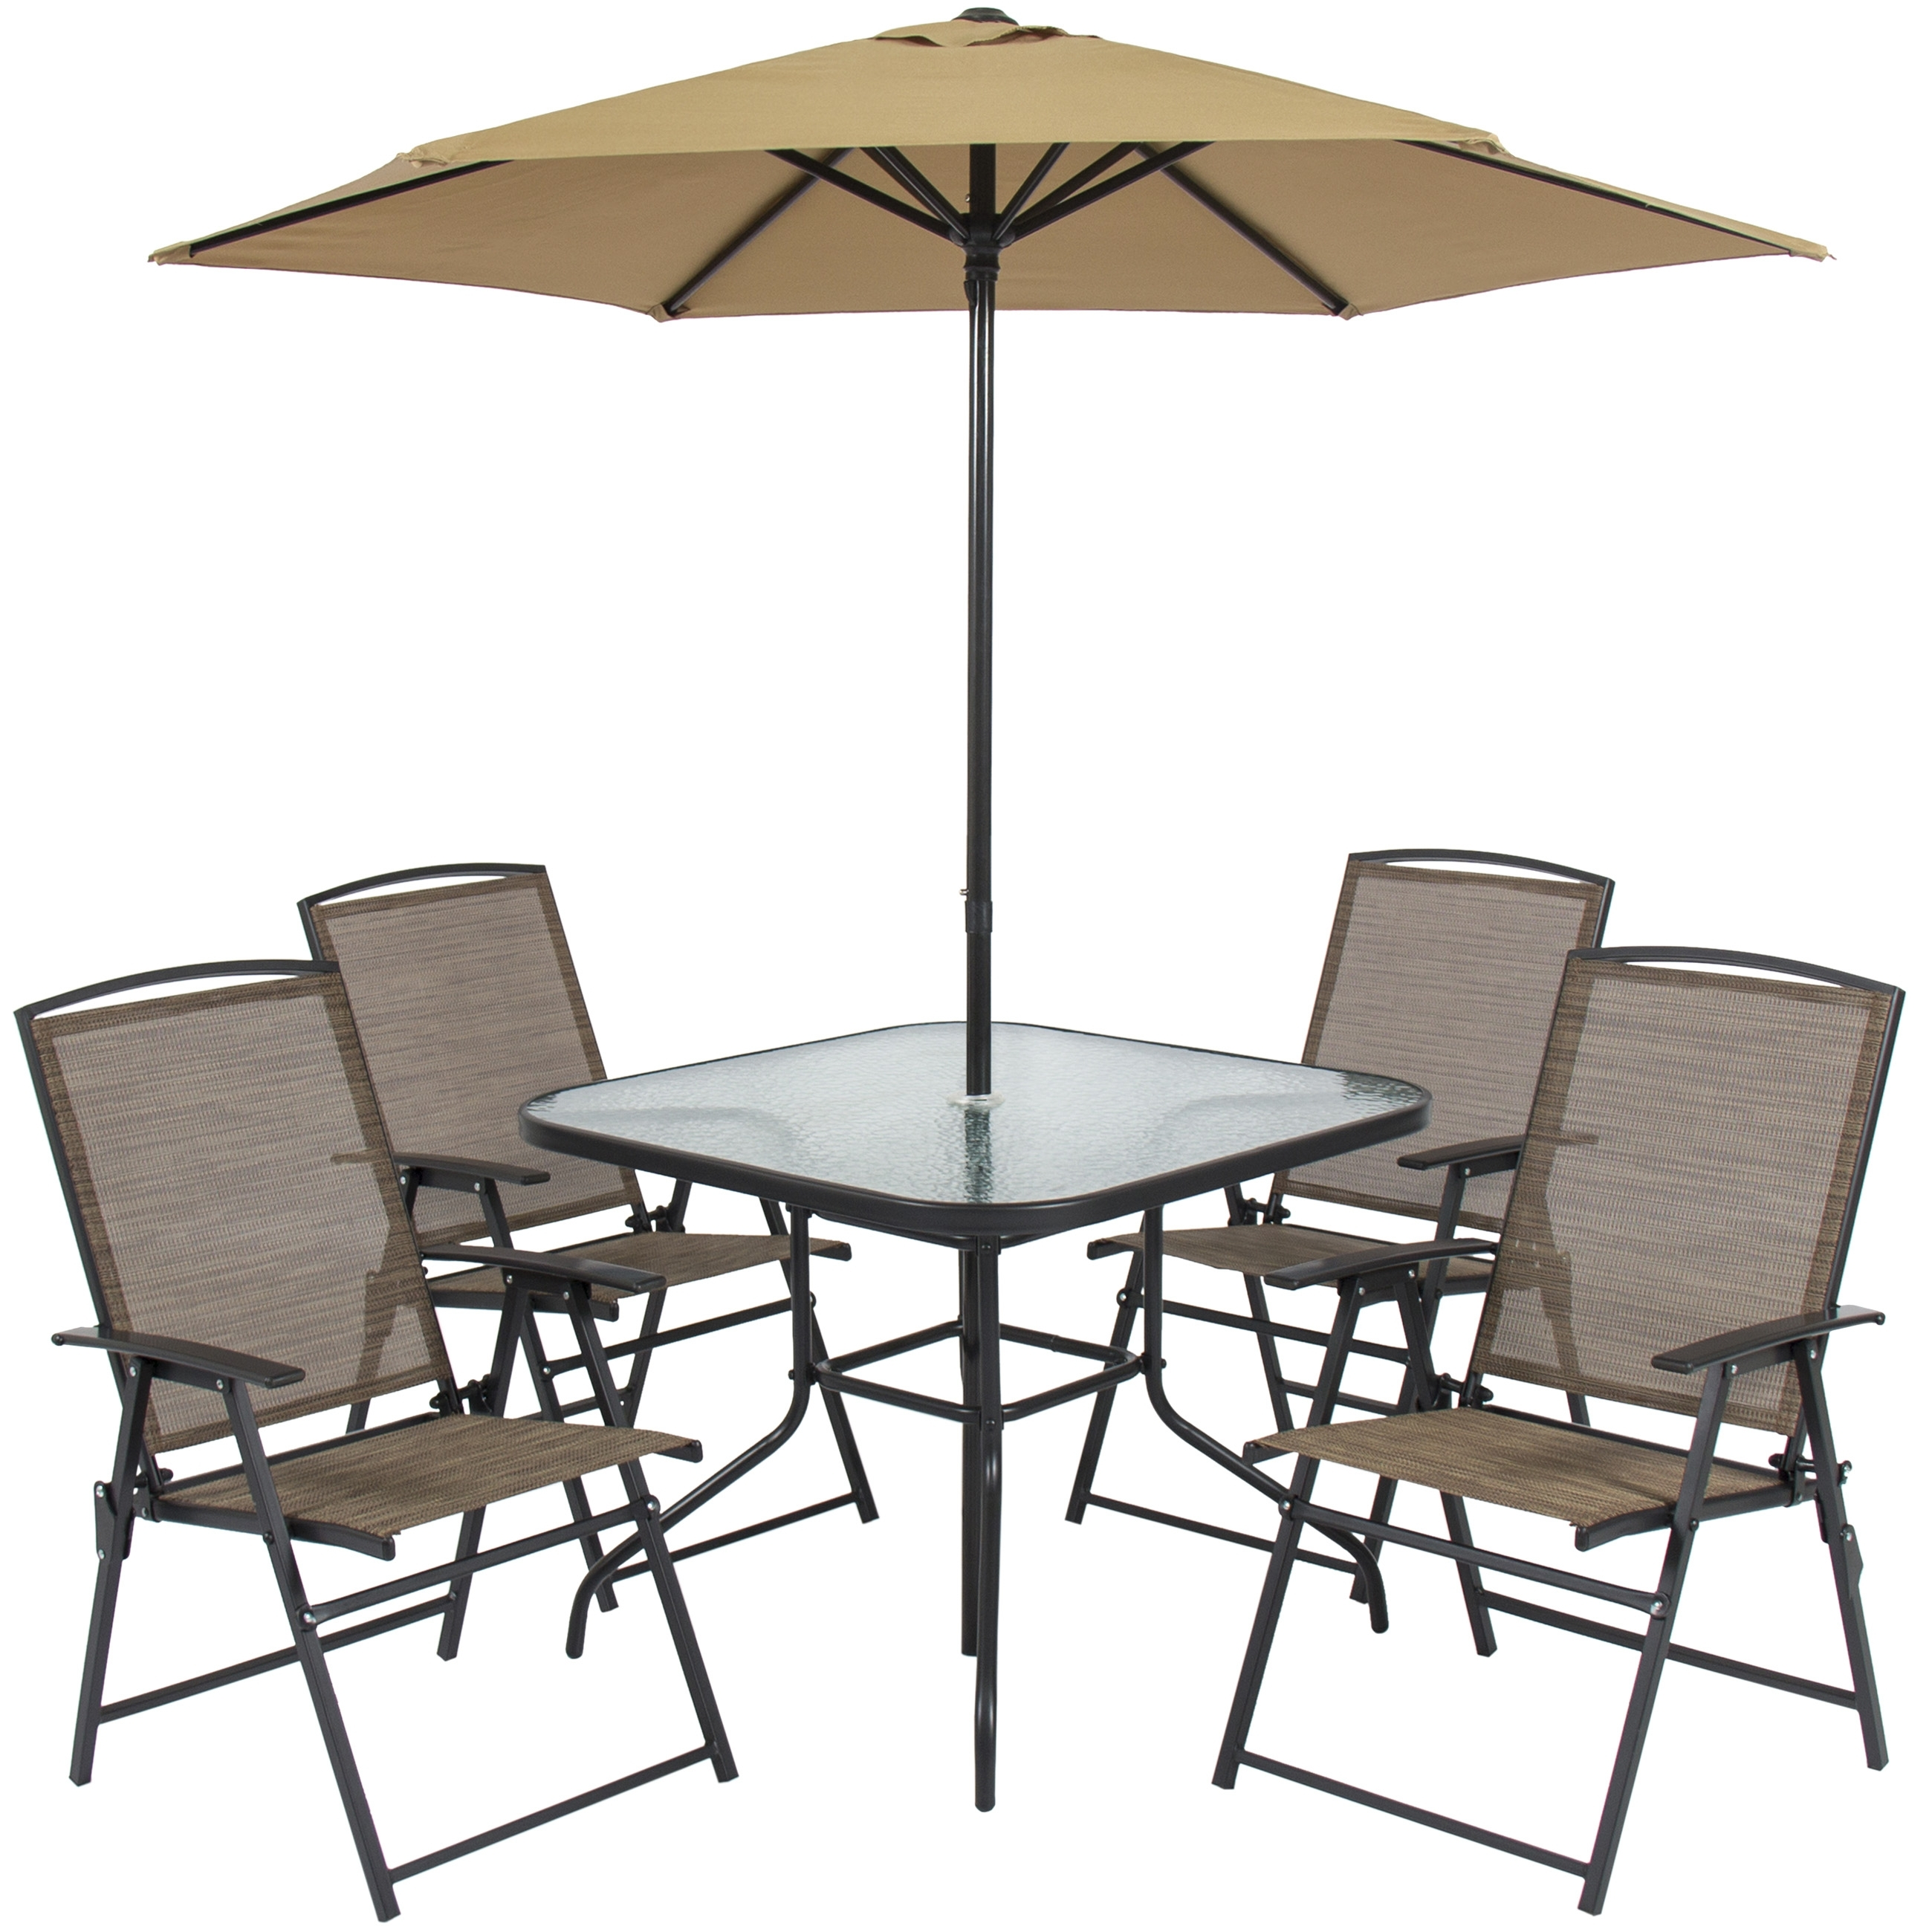 Best Choice Products 6 Piece Outdoor Folding Patio Dining Set W Inside Trendy 8 Seat Outdoor Dining Tables (View 13 of 25)